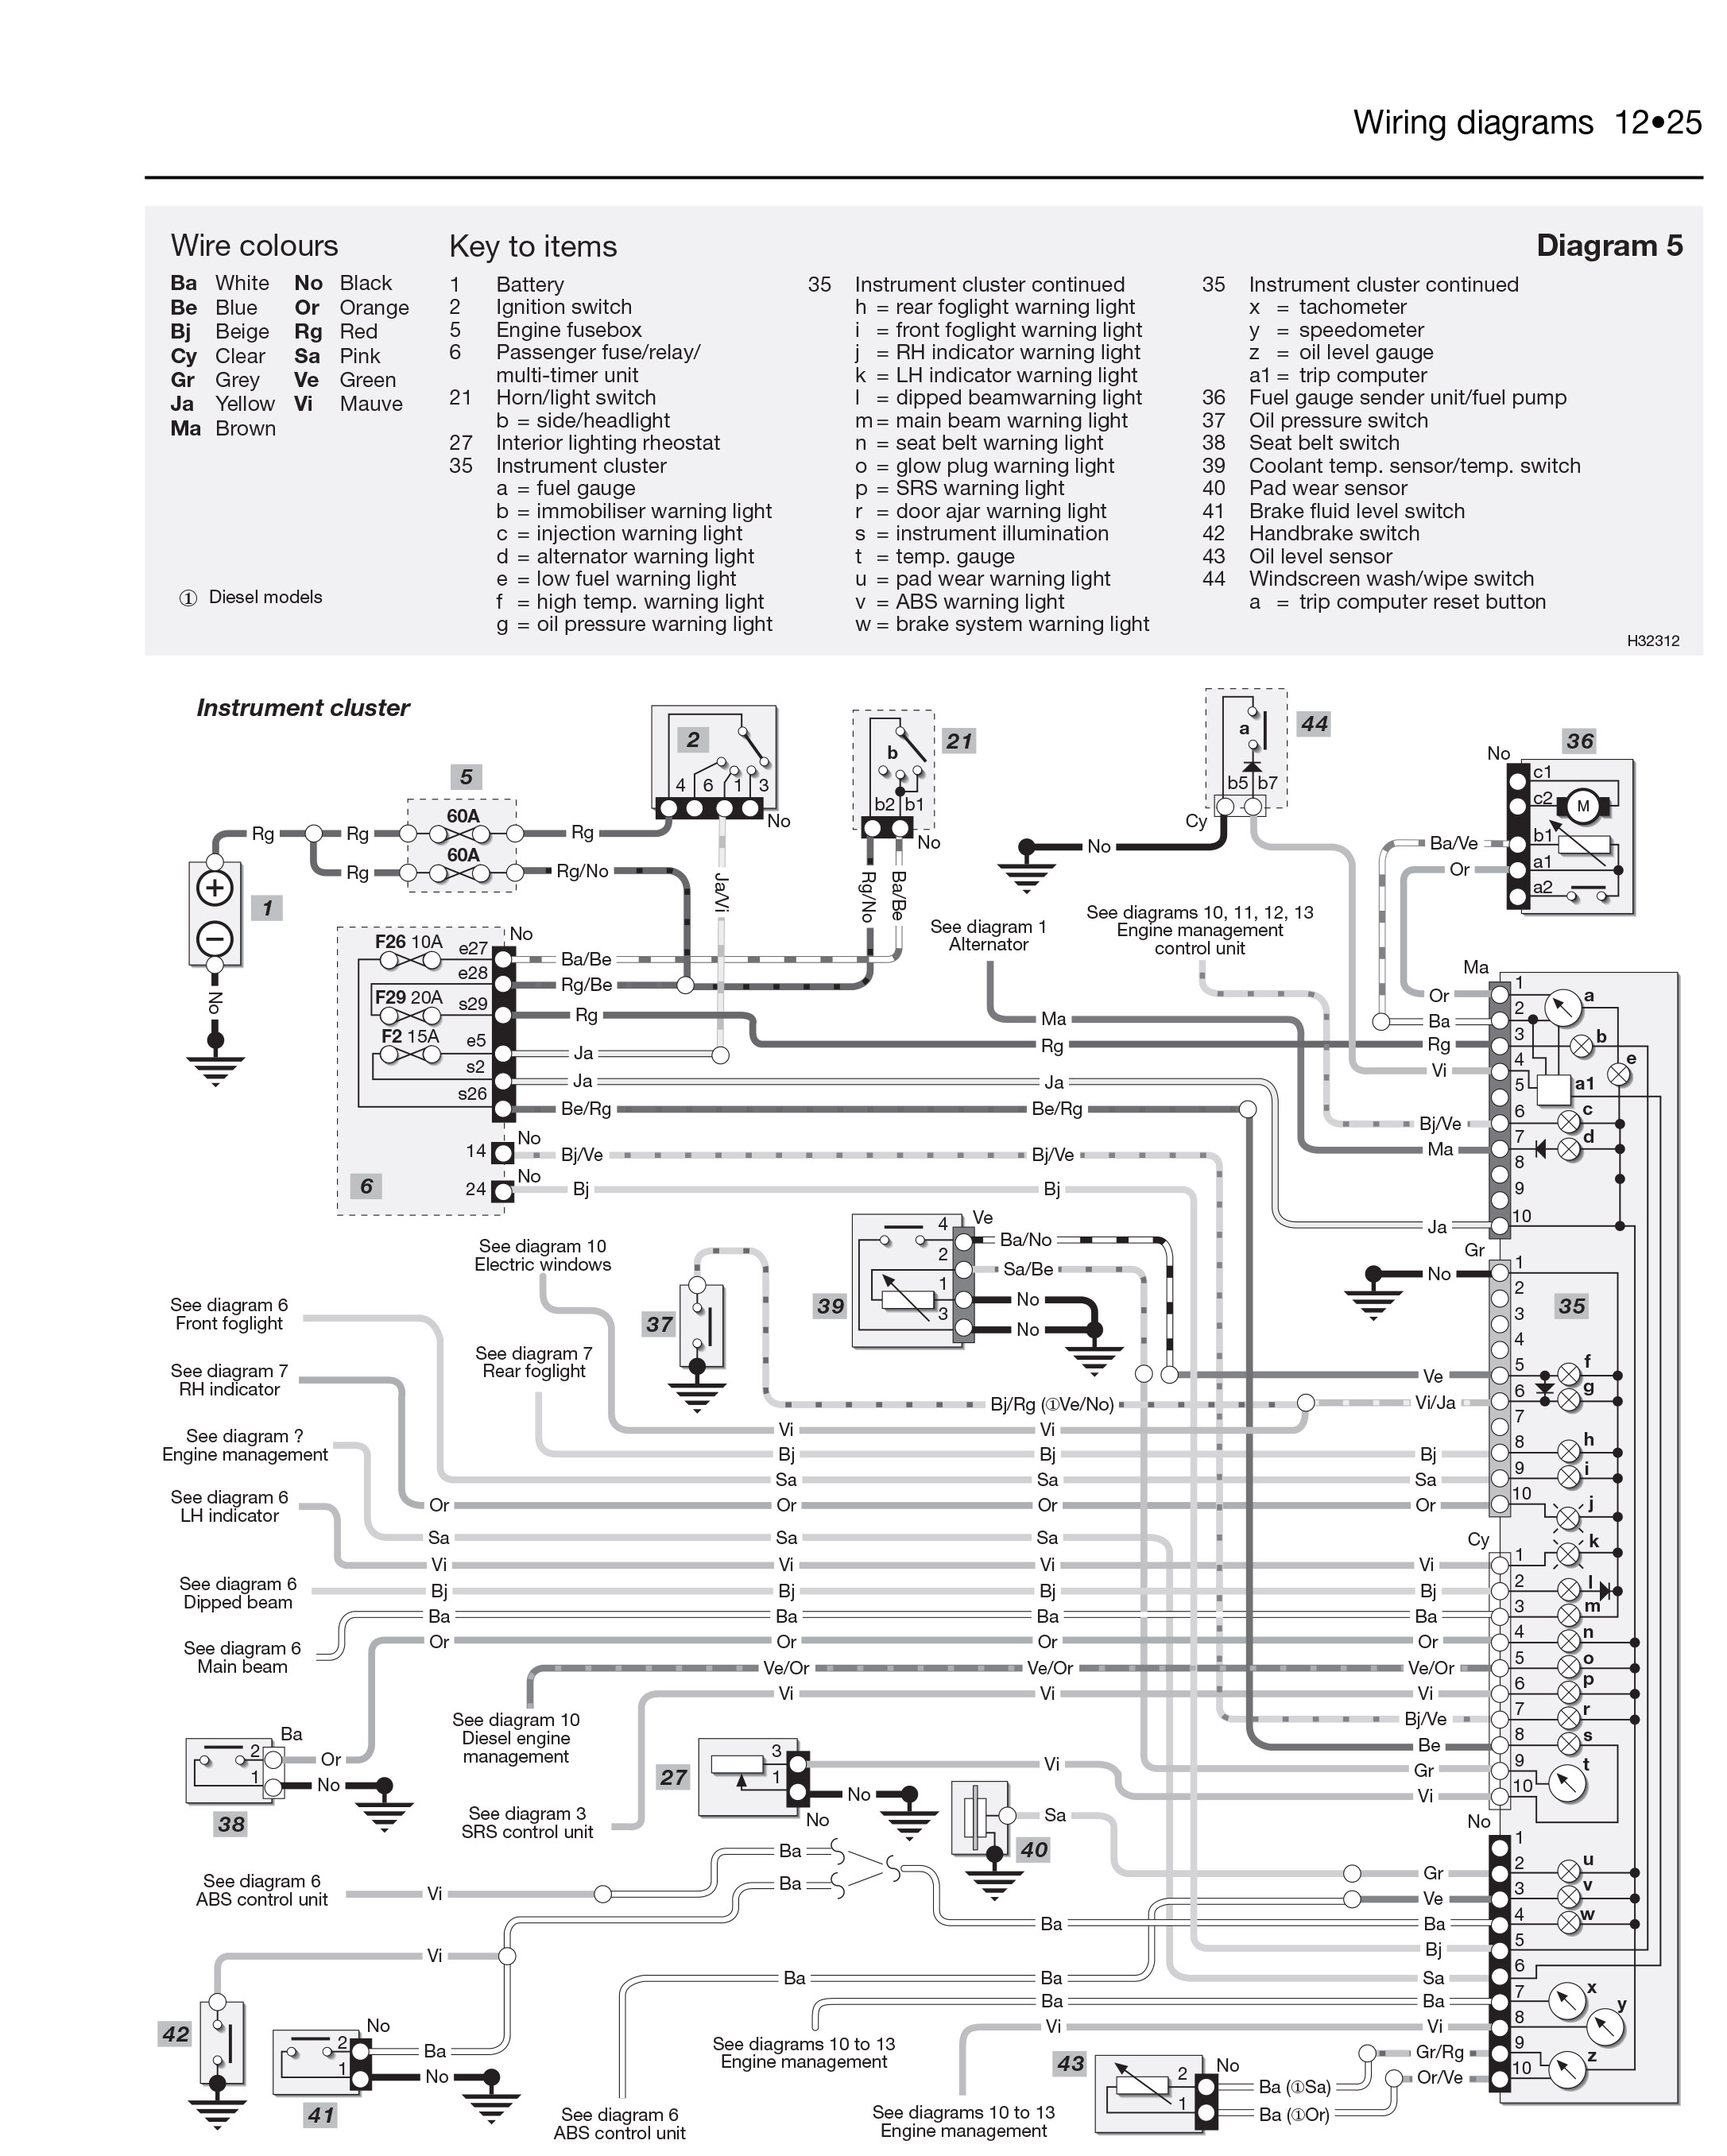 renault wiring diagrams download free renault wiring diagrams logan l90 renault clio petrol & diesel (may 98 - may 01) haynes ...